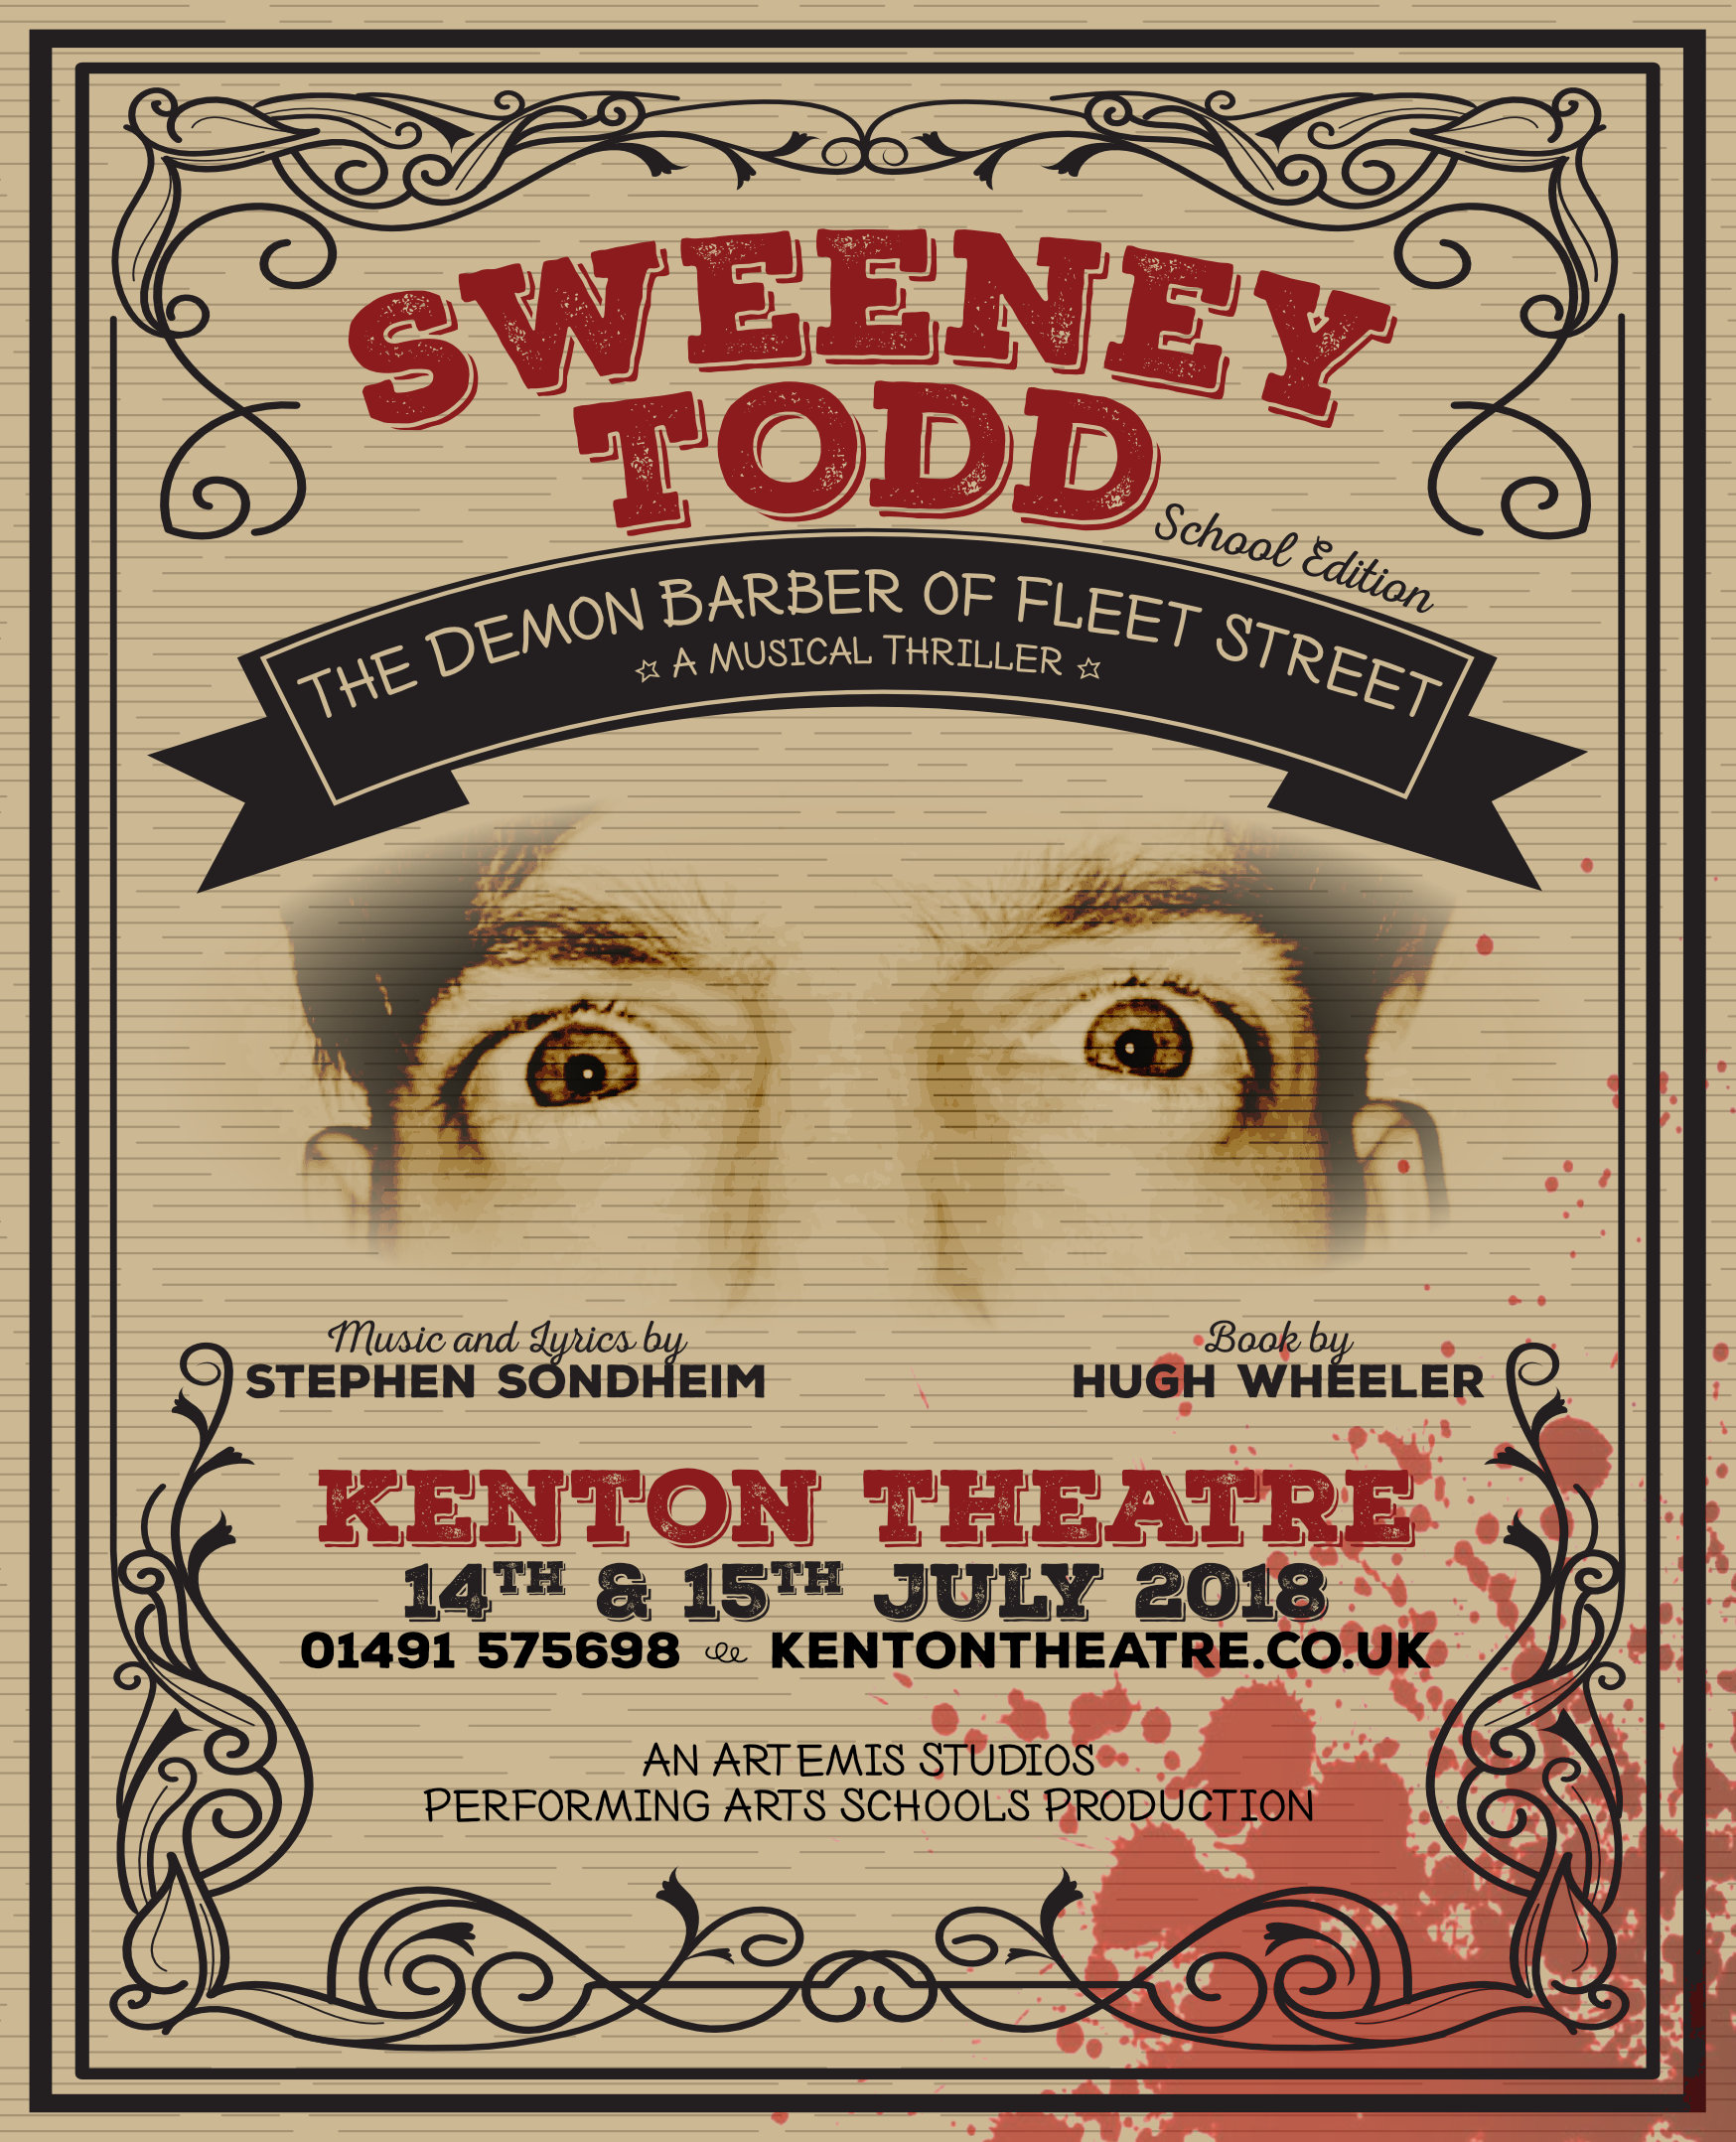 Sweeney Todd show poster